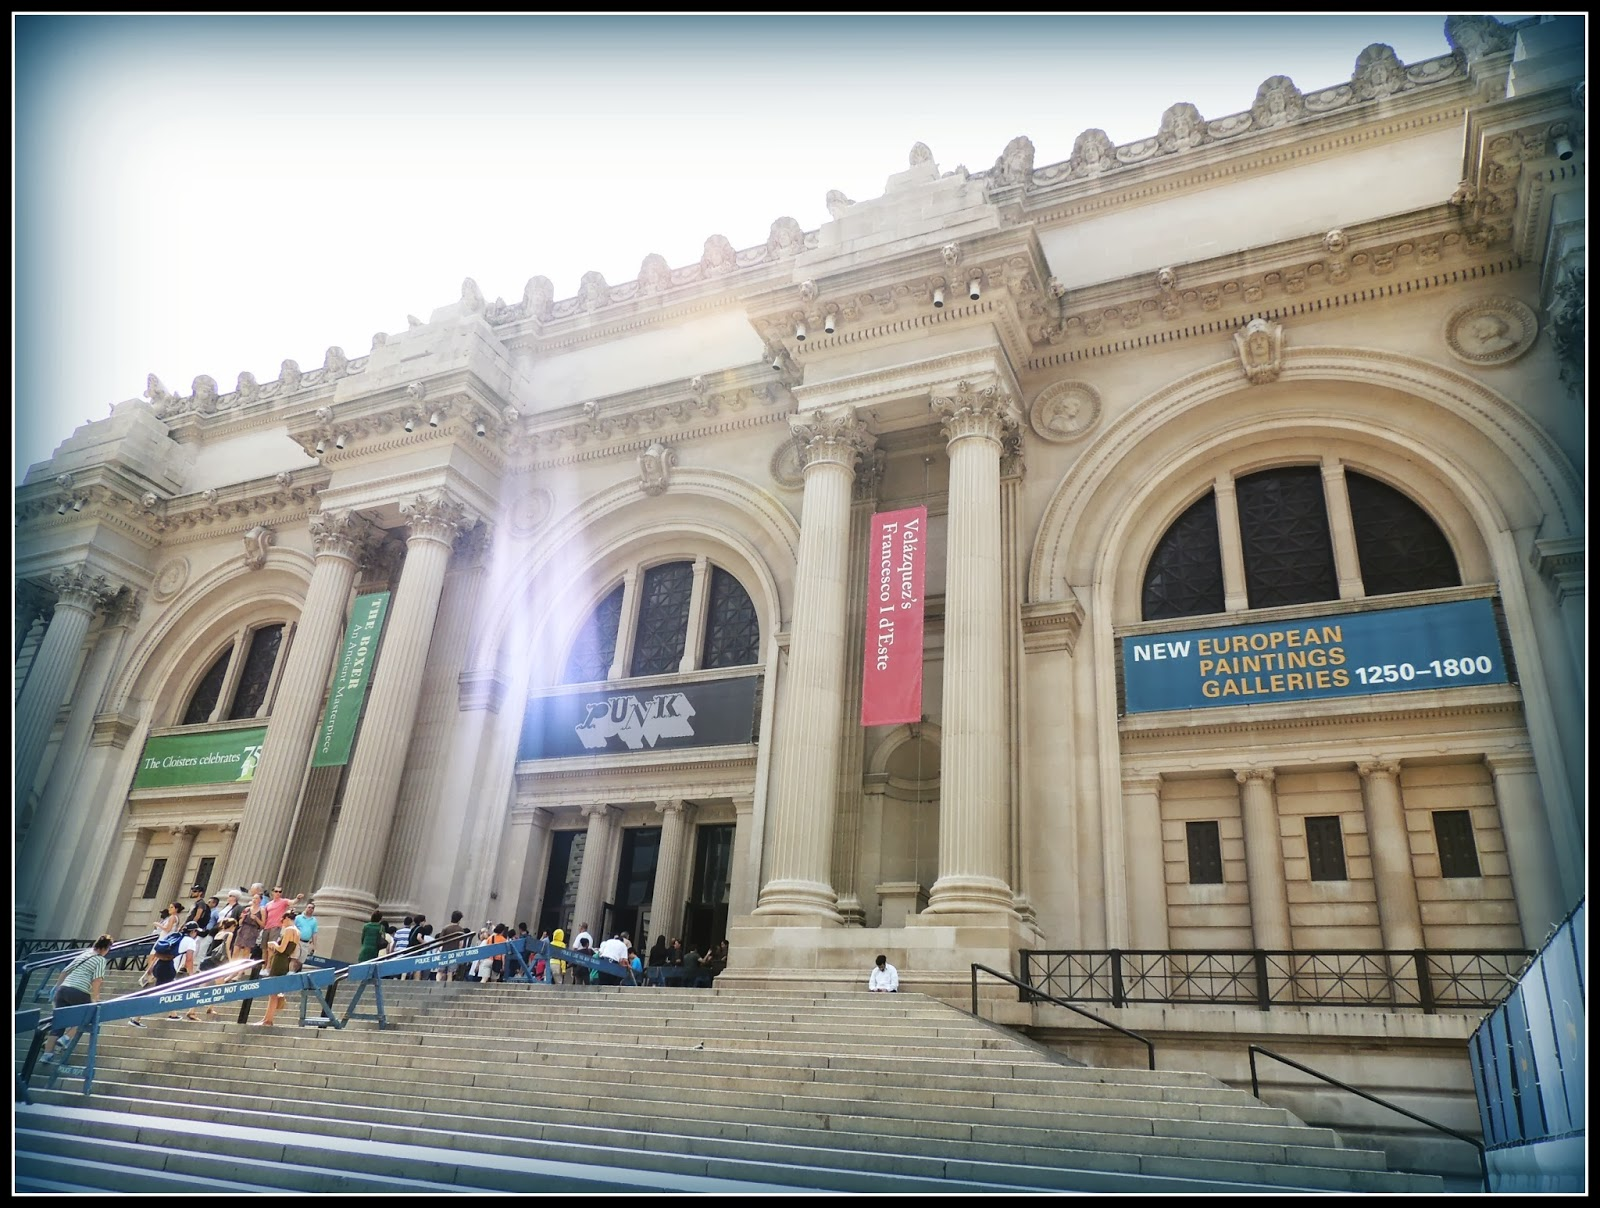 NY en 3 Días: The Metropolitan Museum of Art